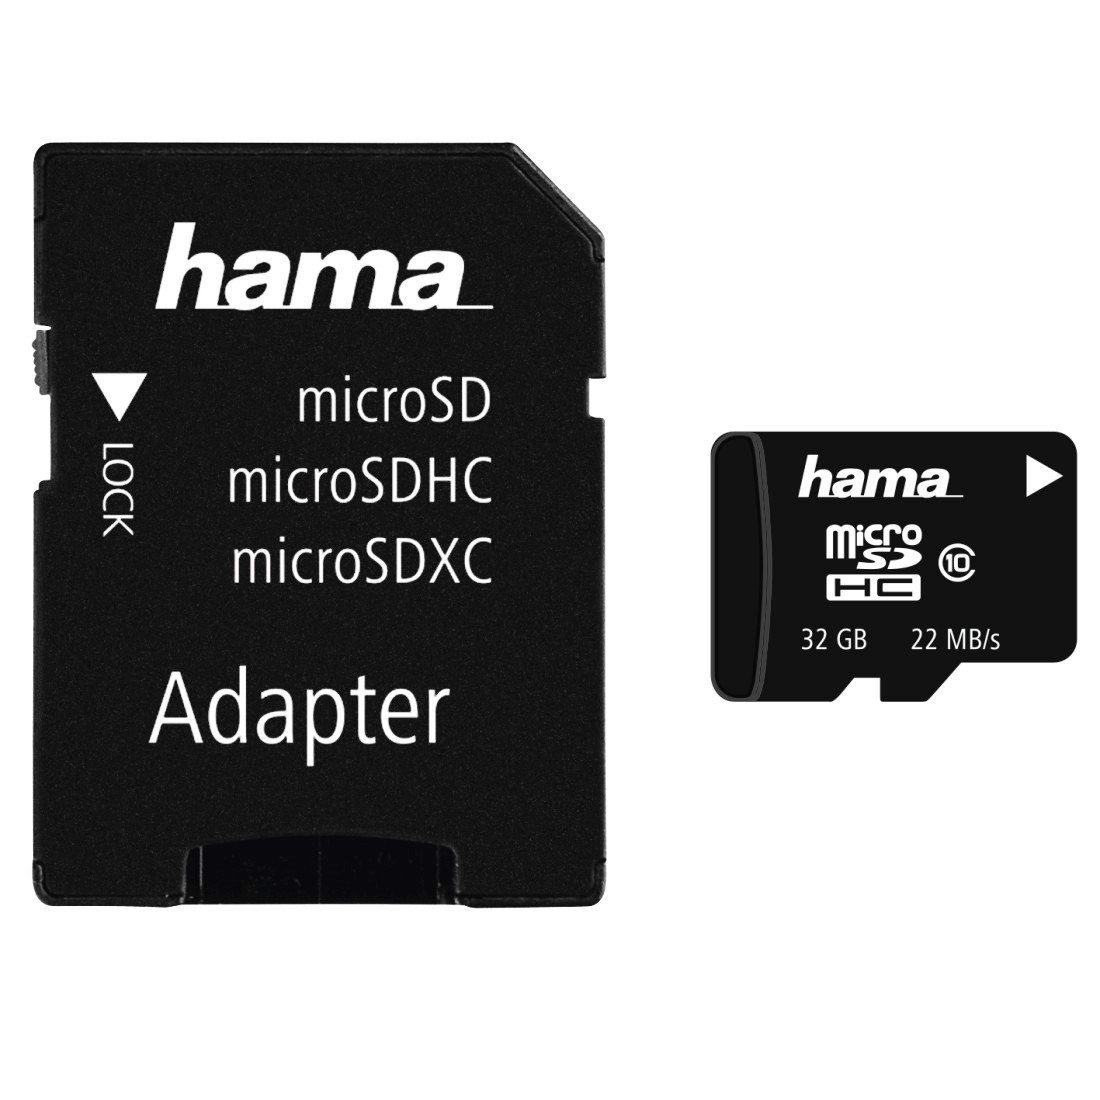 Hama Speicherkarte microSDHC 32GB Class 10, Karte mit SD Adapter »Memory Card ideal für Full HD«